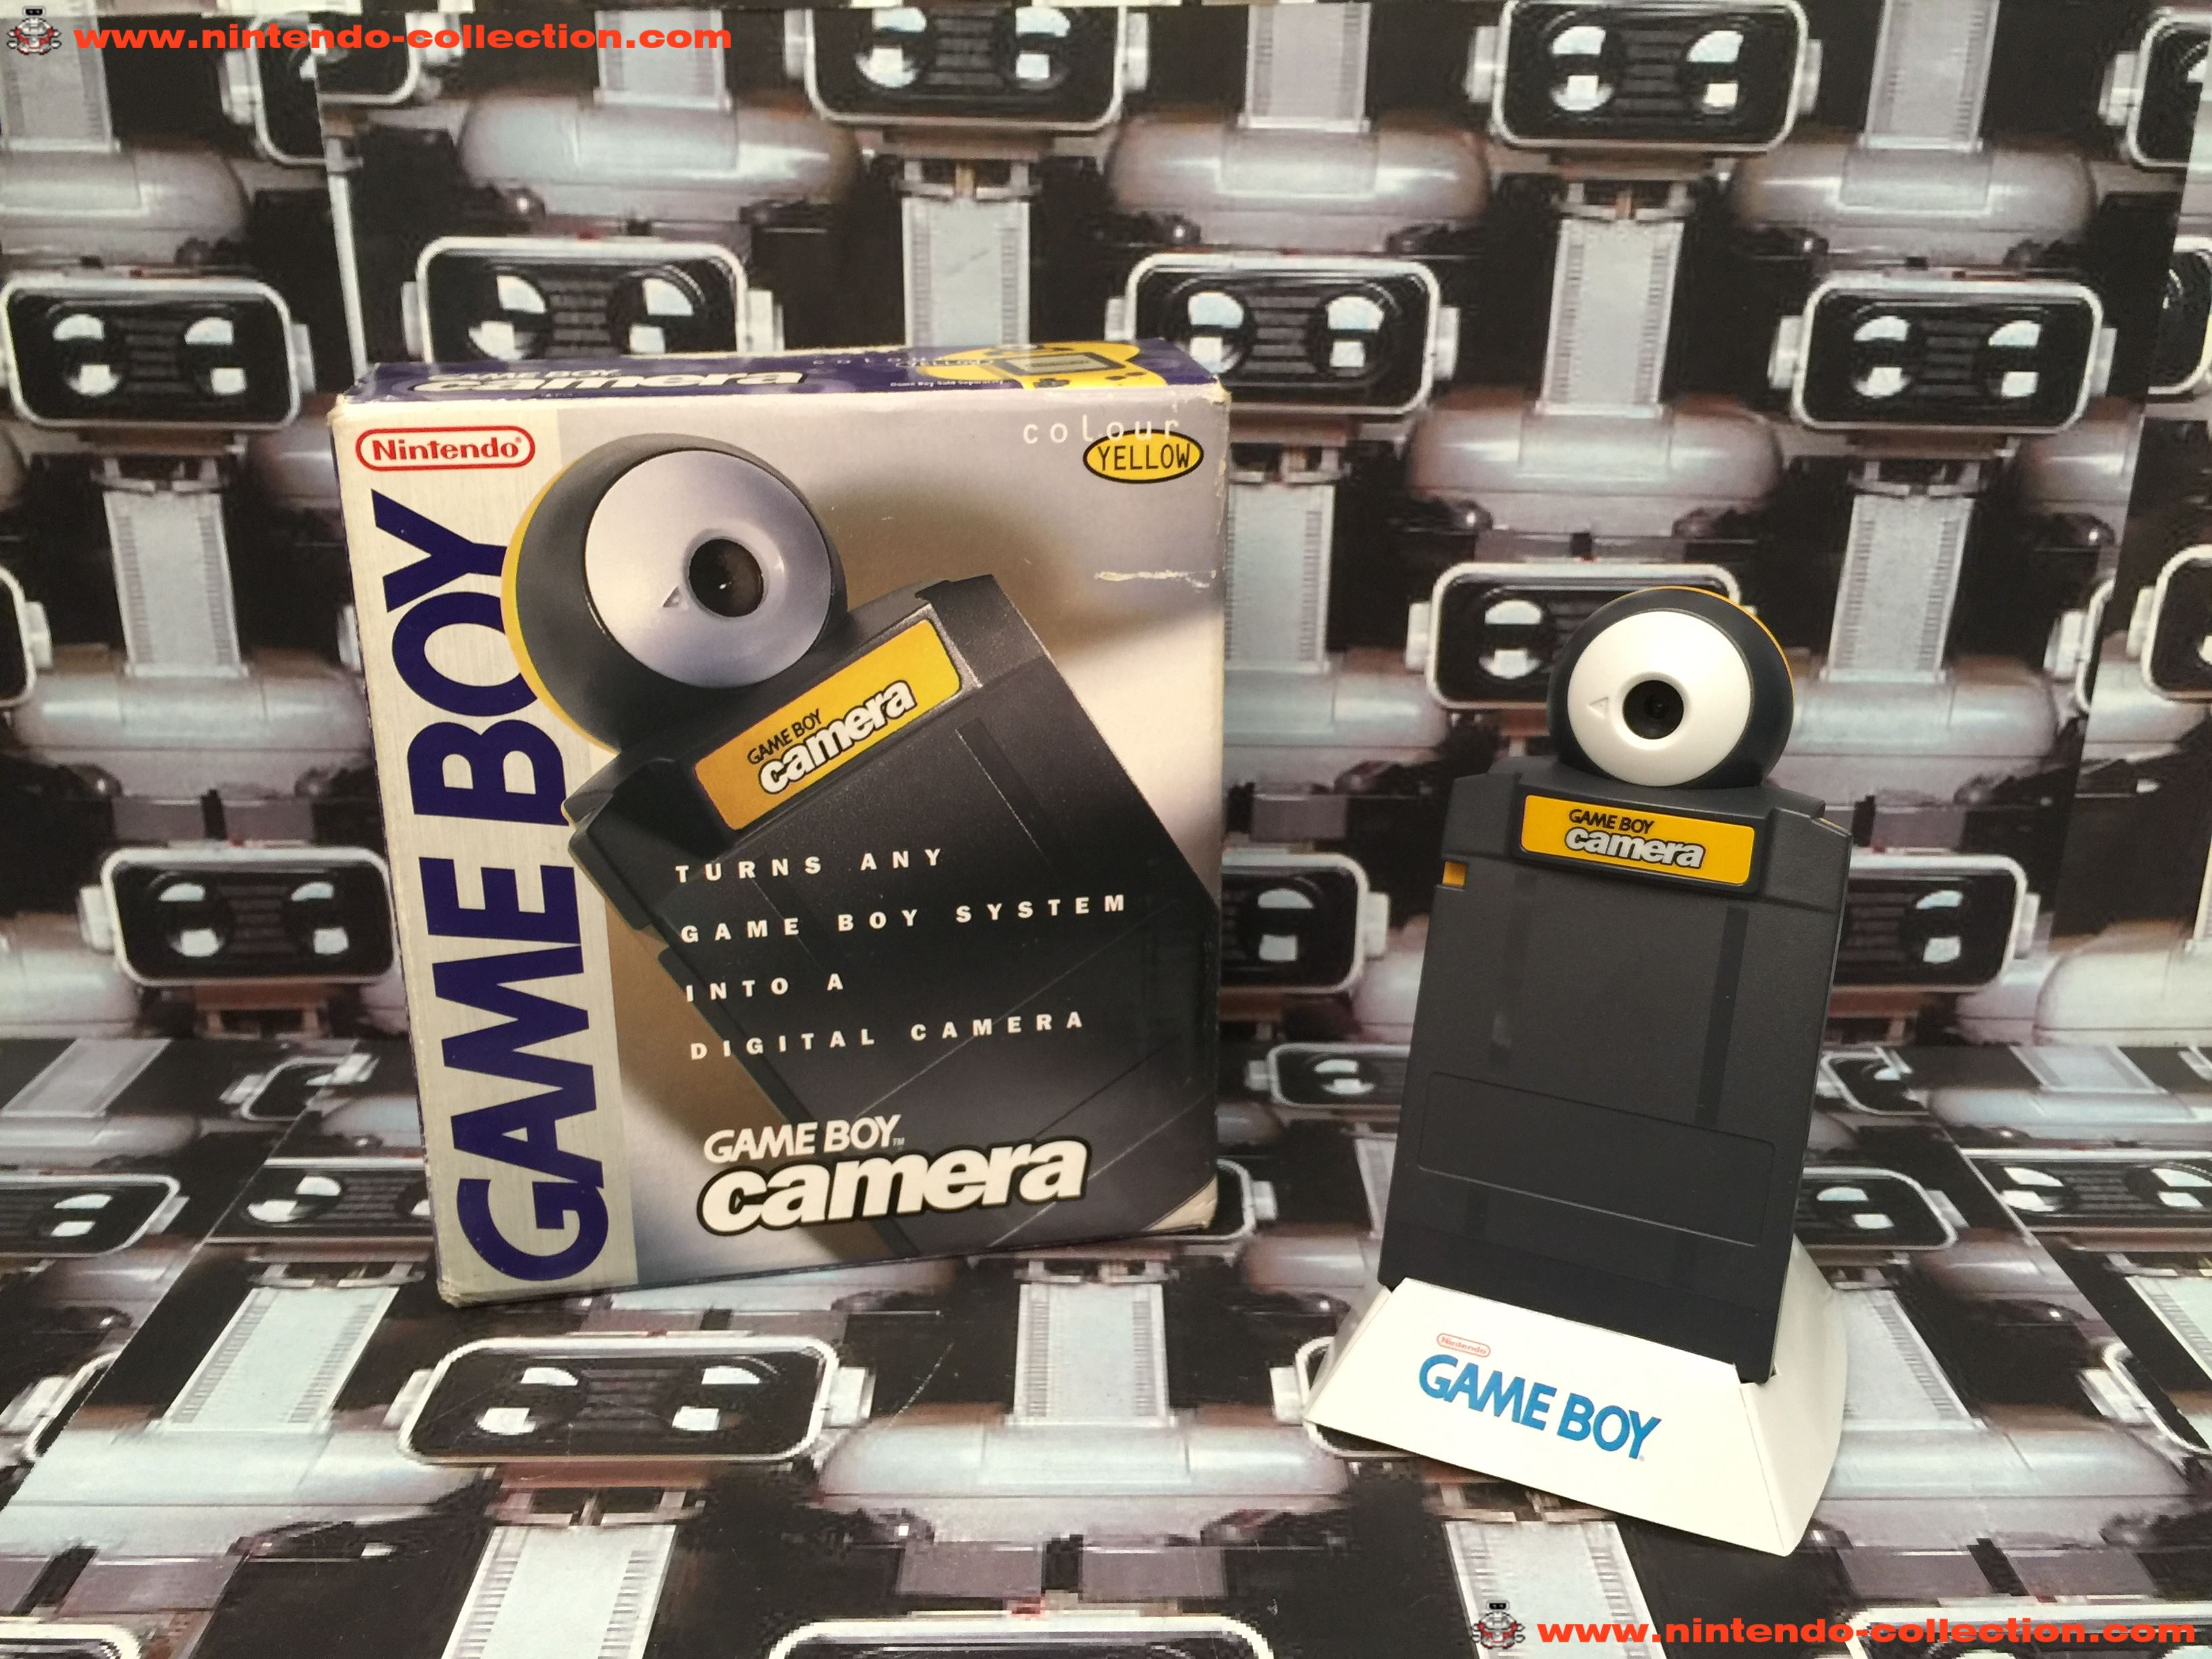 www.nintendo-collection.com - GameBoy Camera Yellow Jaune UK Version Royaume-Uni.JPG